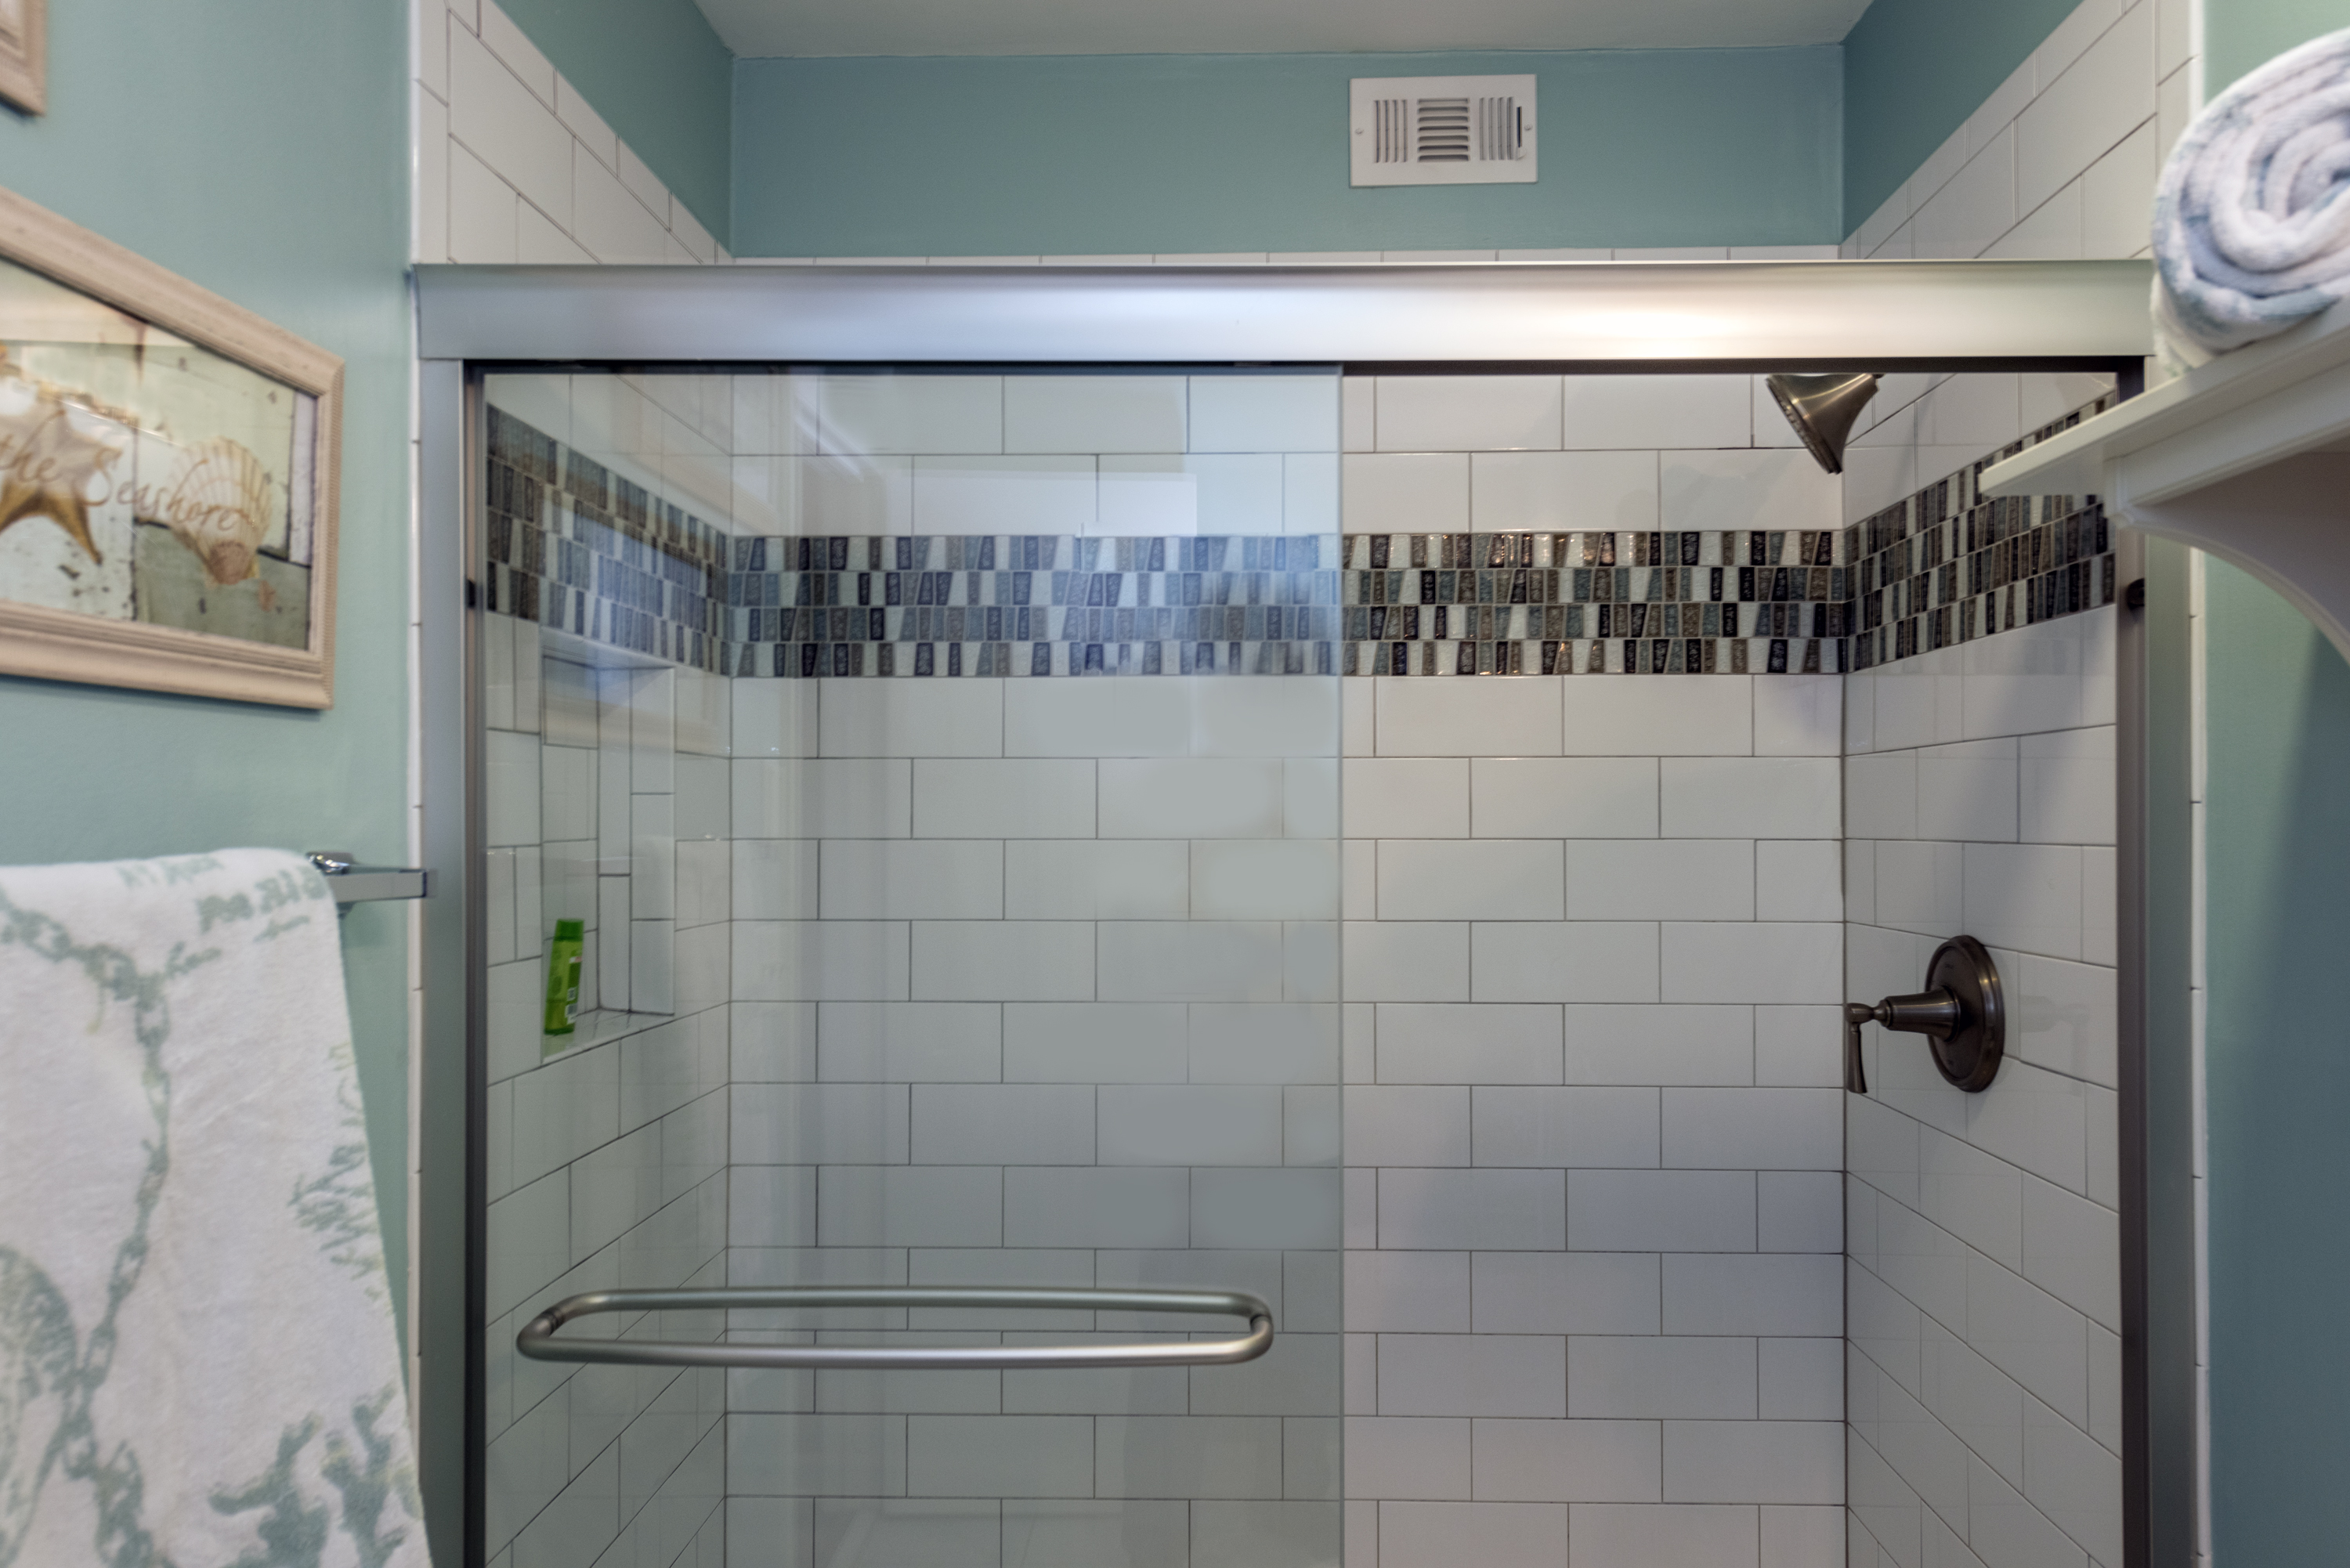 The large tiled shower has plenty of room  and glass doors.